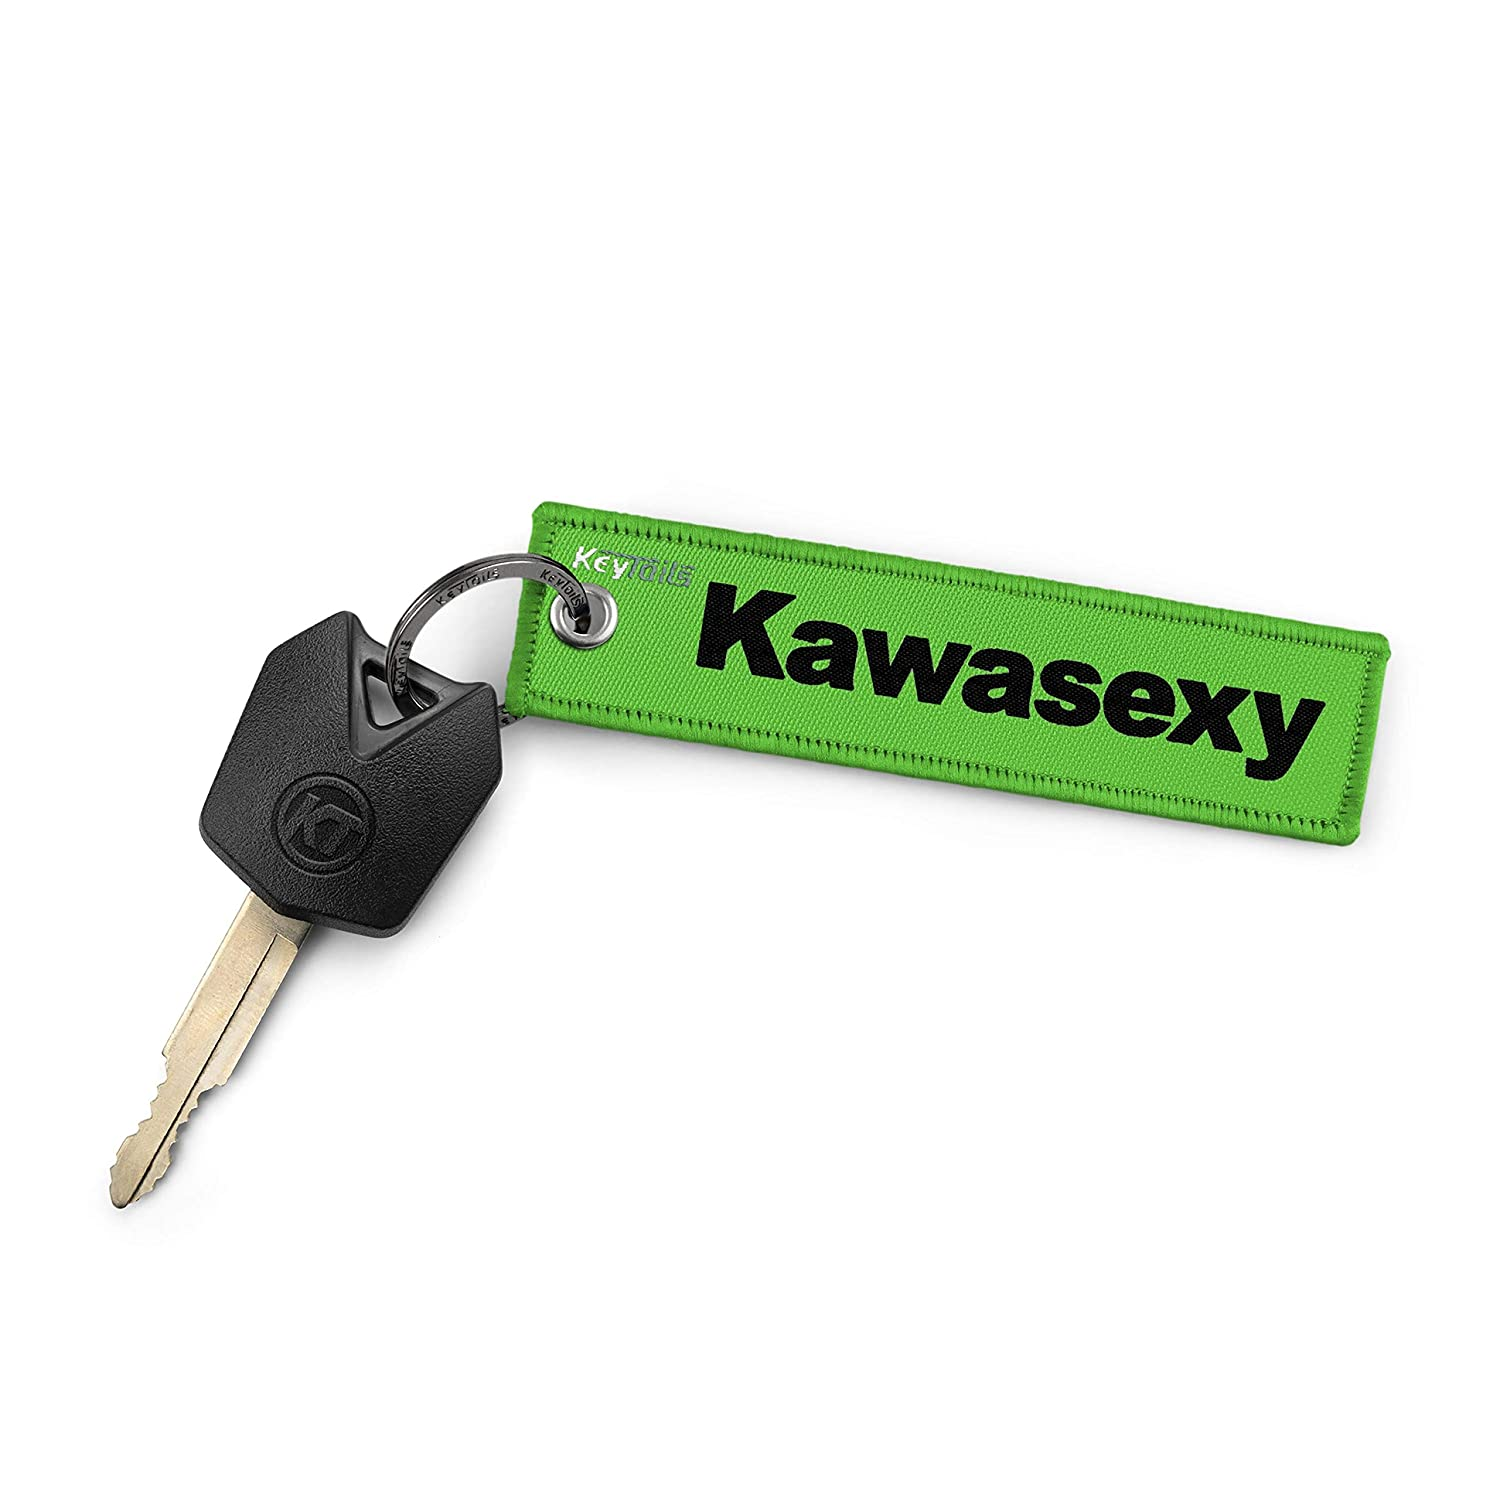 KEYTAILS Keychains, Premium Quality Key Tag for Kawasaki, Motorcycle, ATV, UTV [Kawasexy]